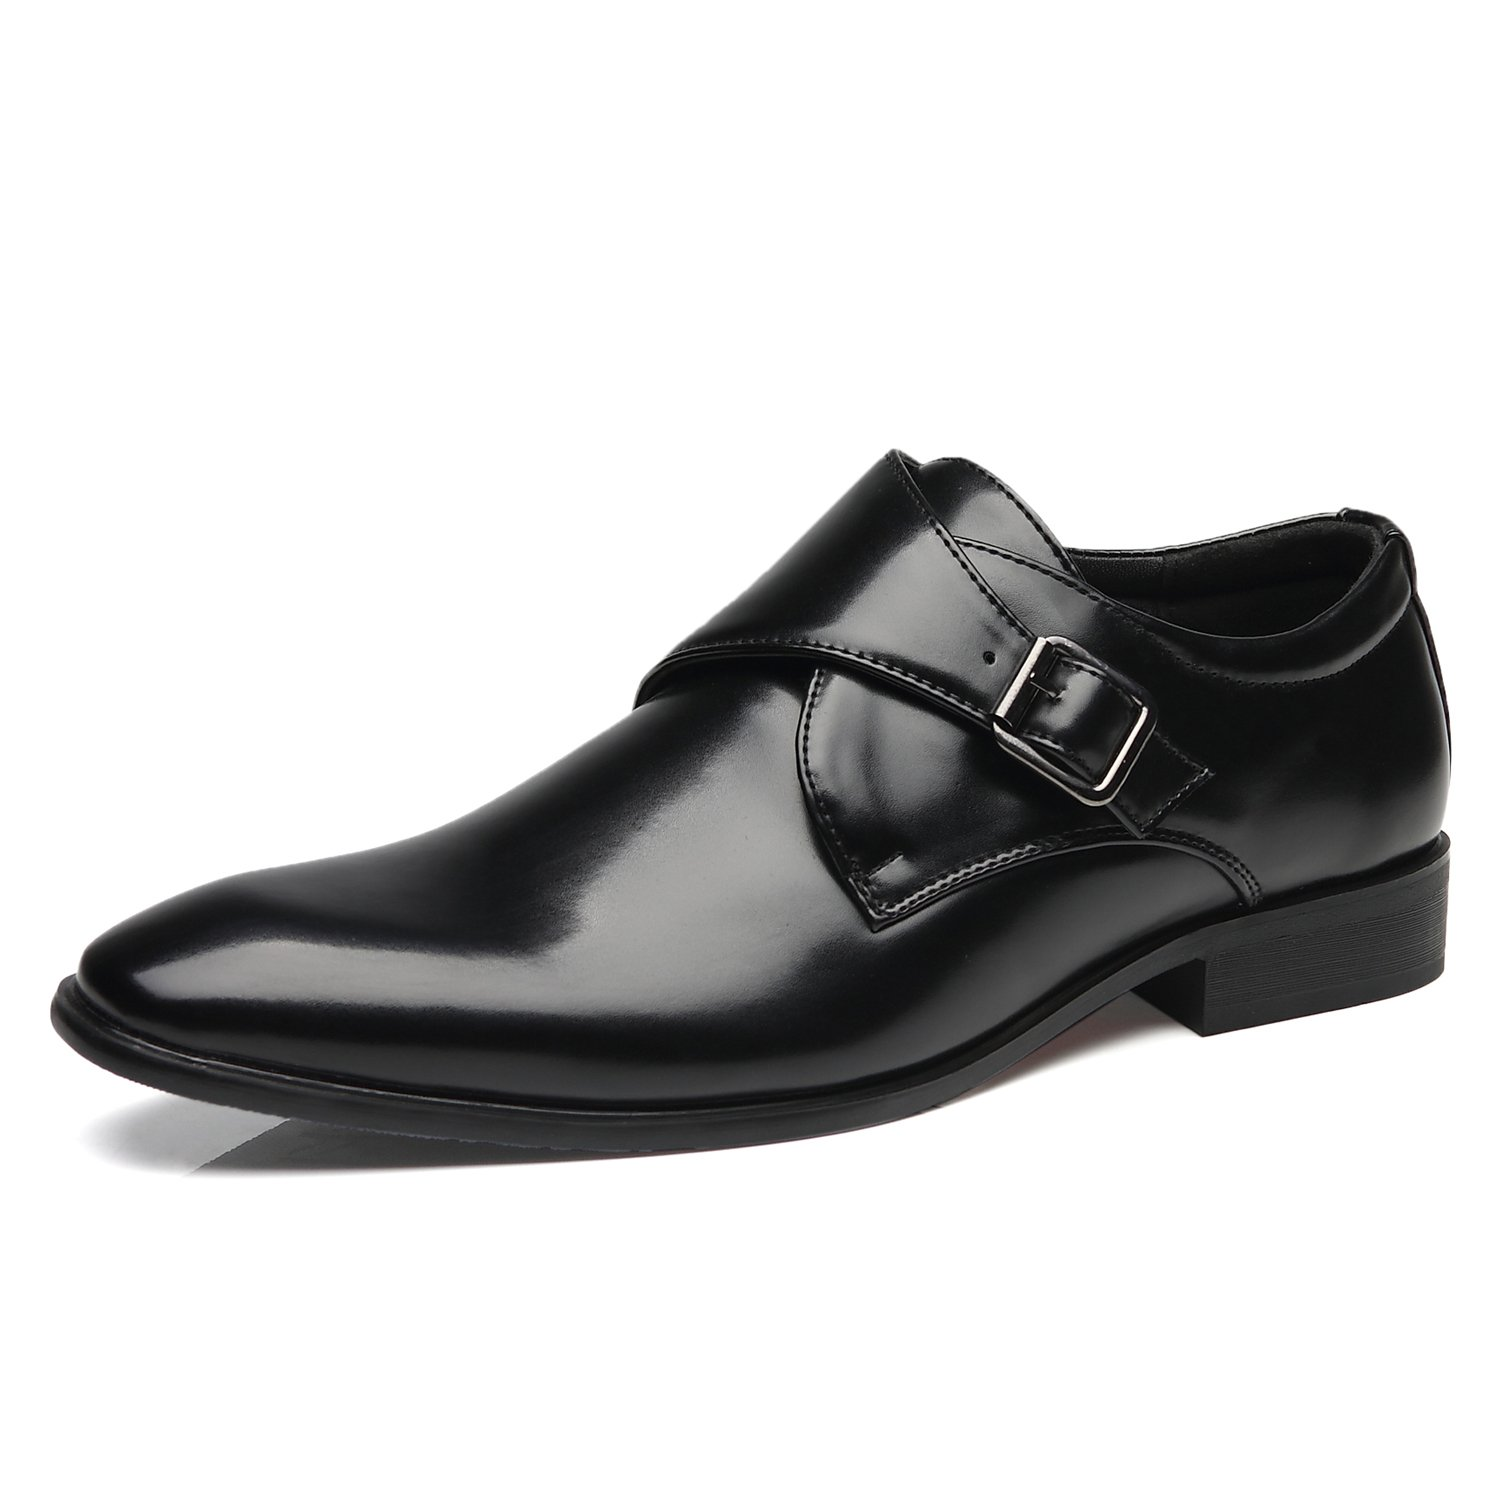 dress comforter mens official store shoes business for most uk ian ecco an comfortable men